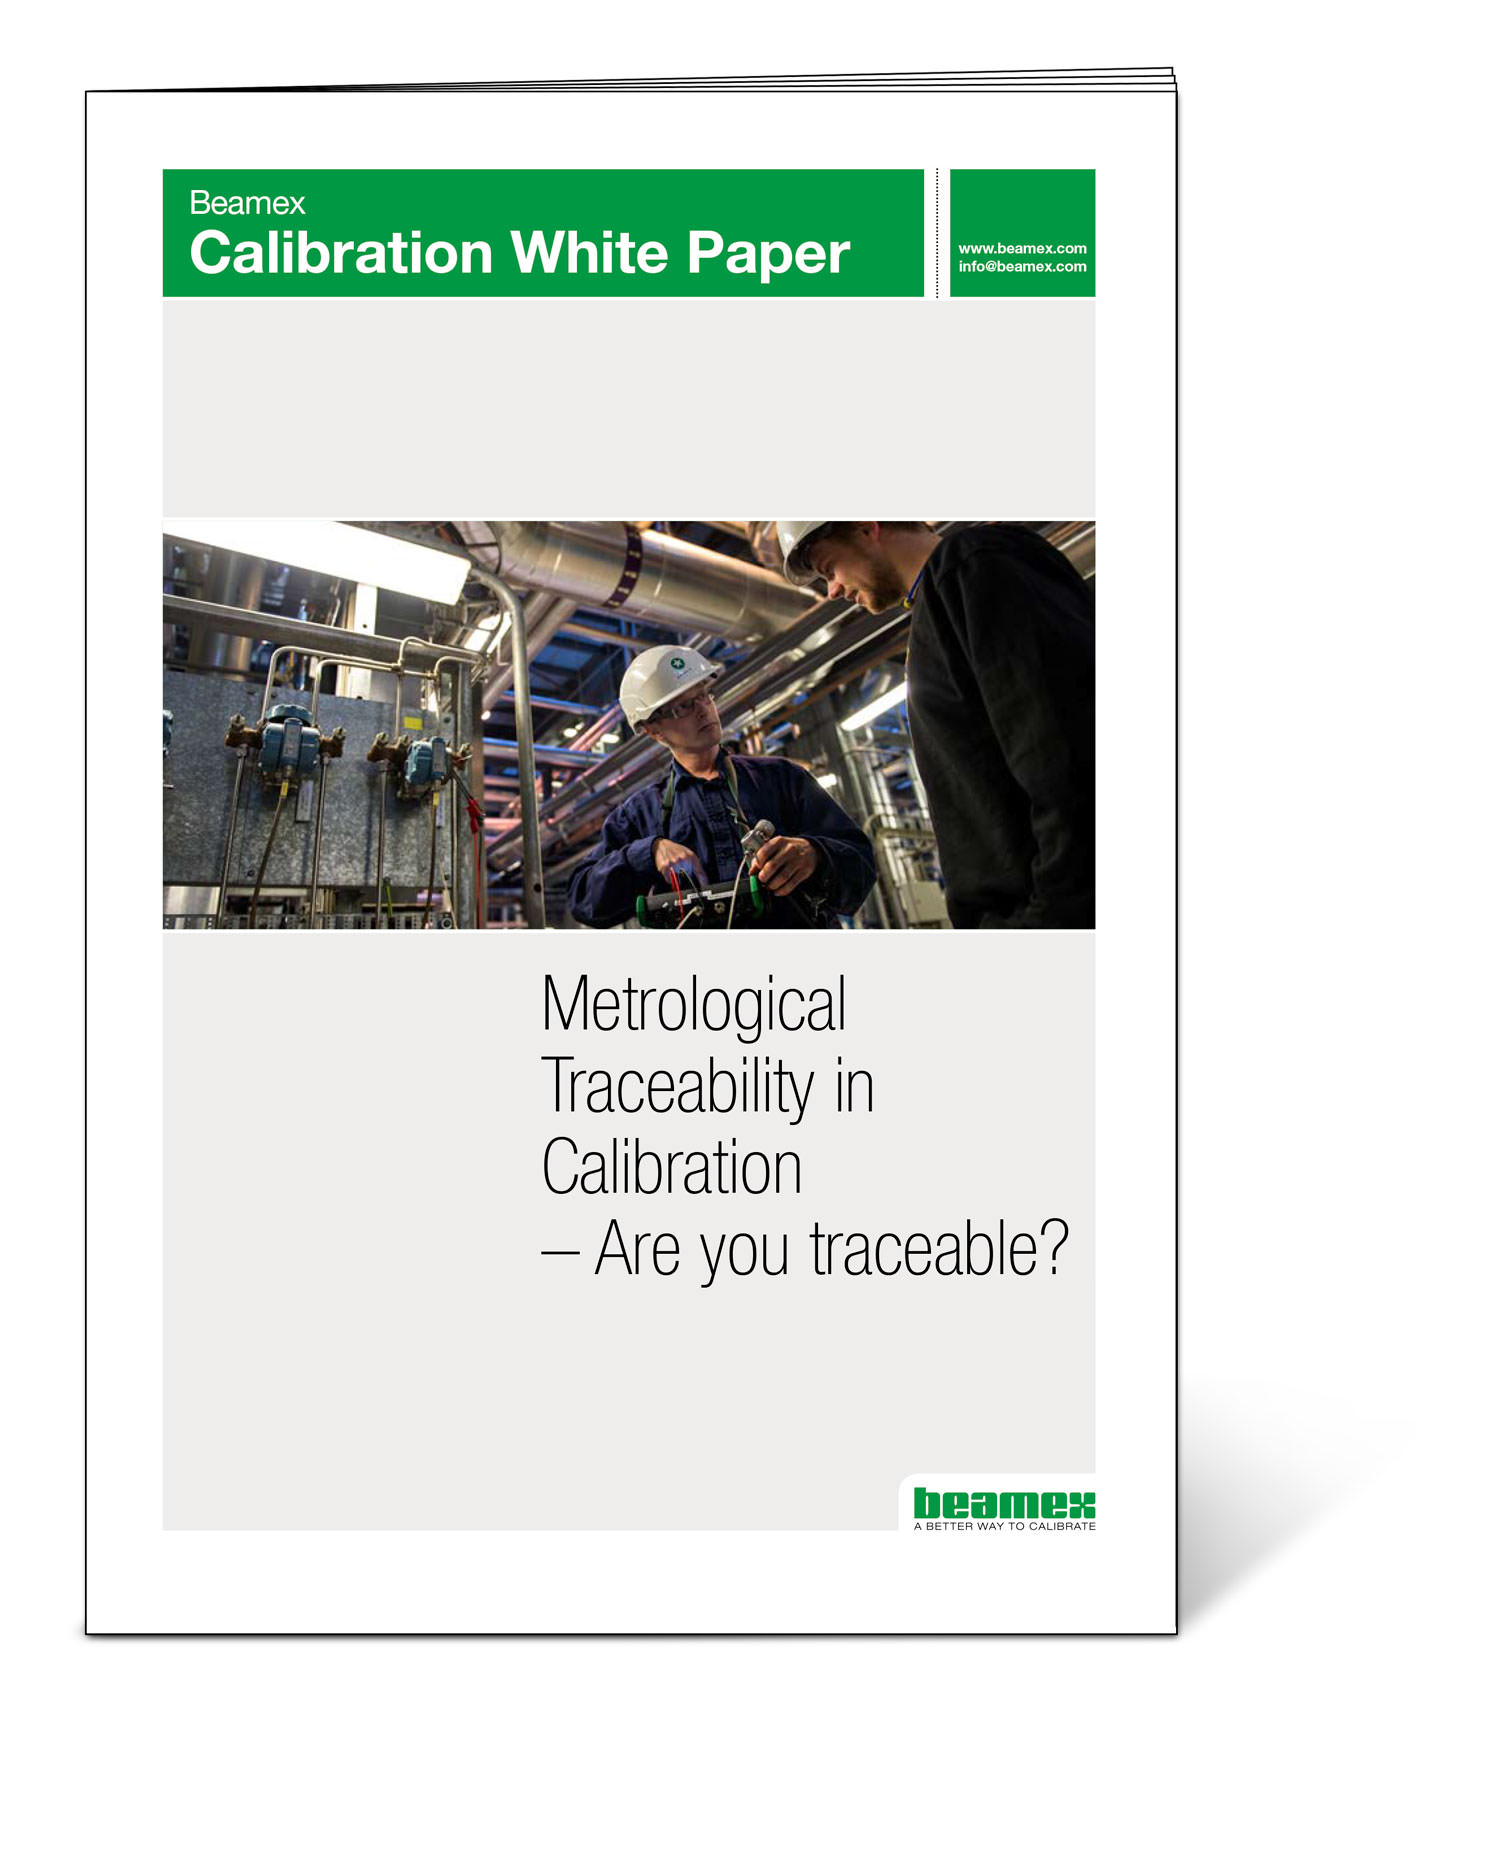 Metrological traceability in calibration - Beamex white paper